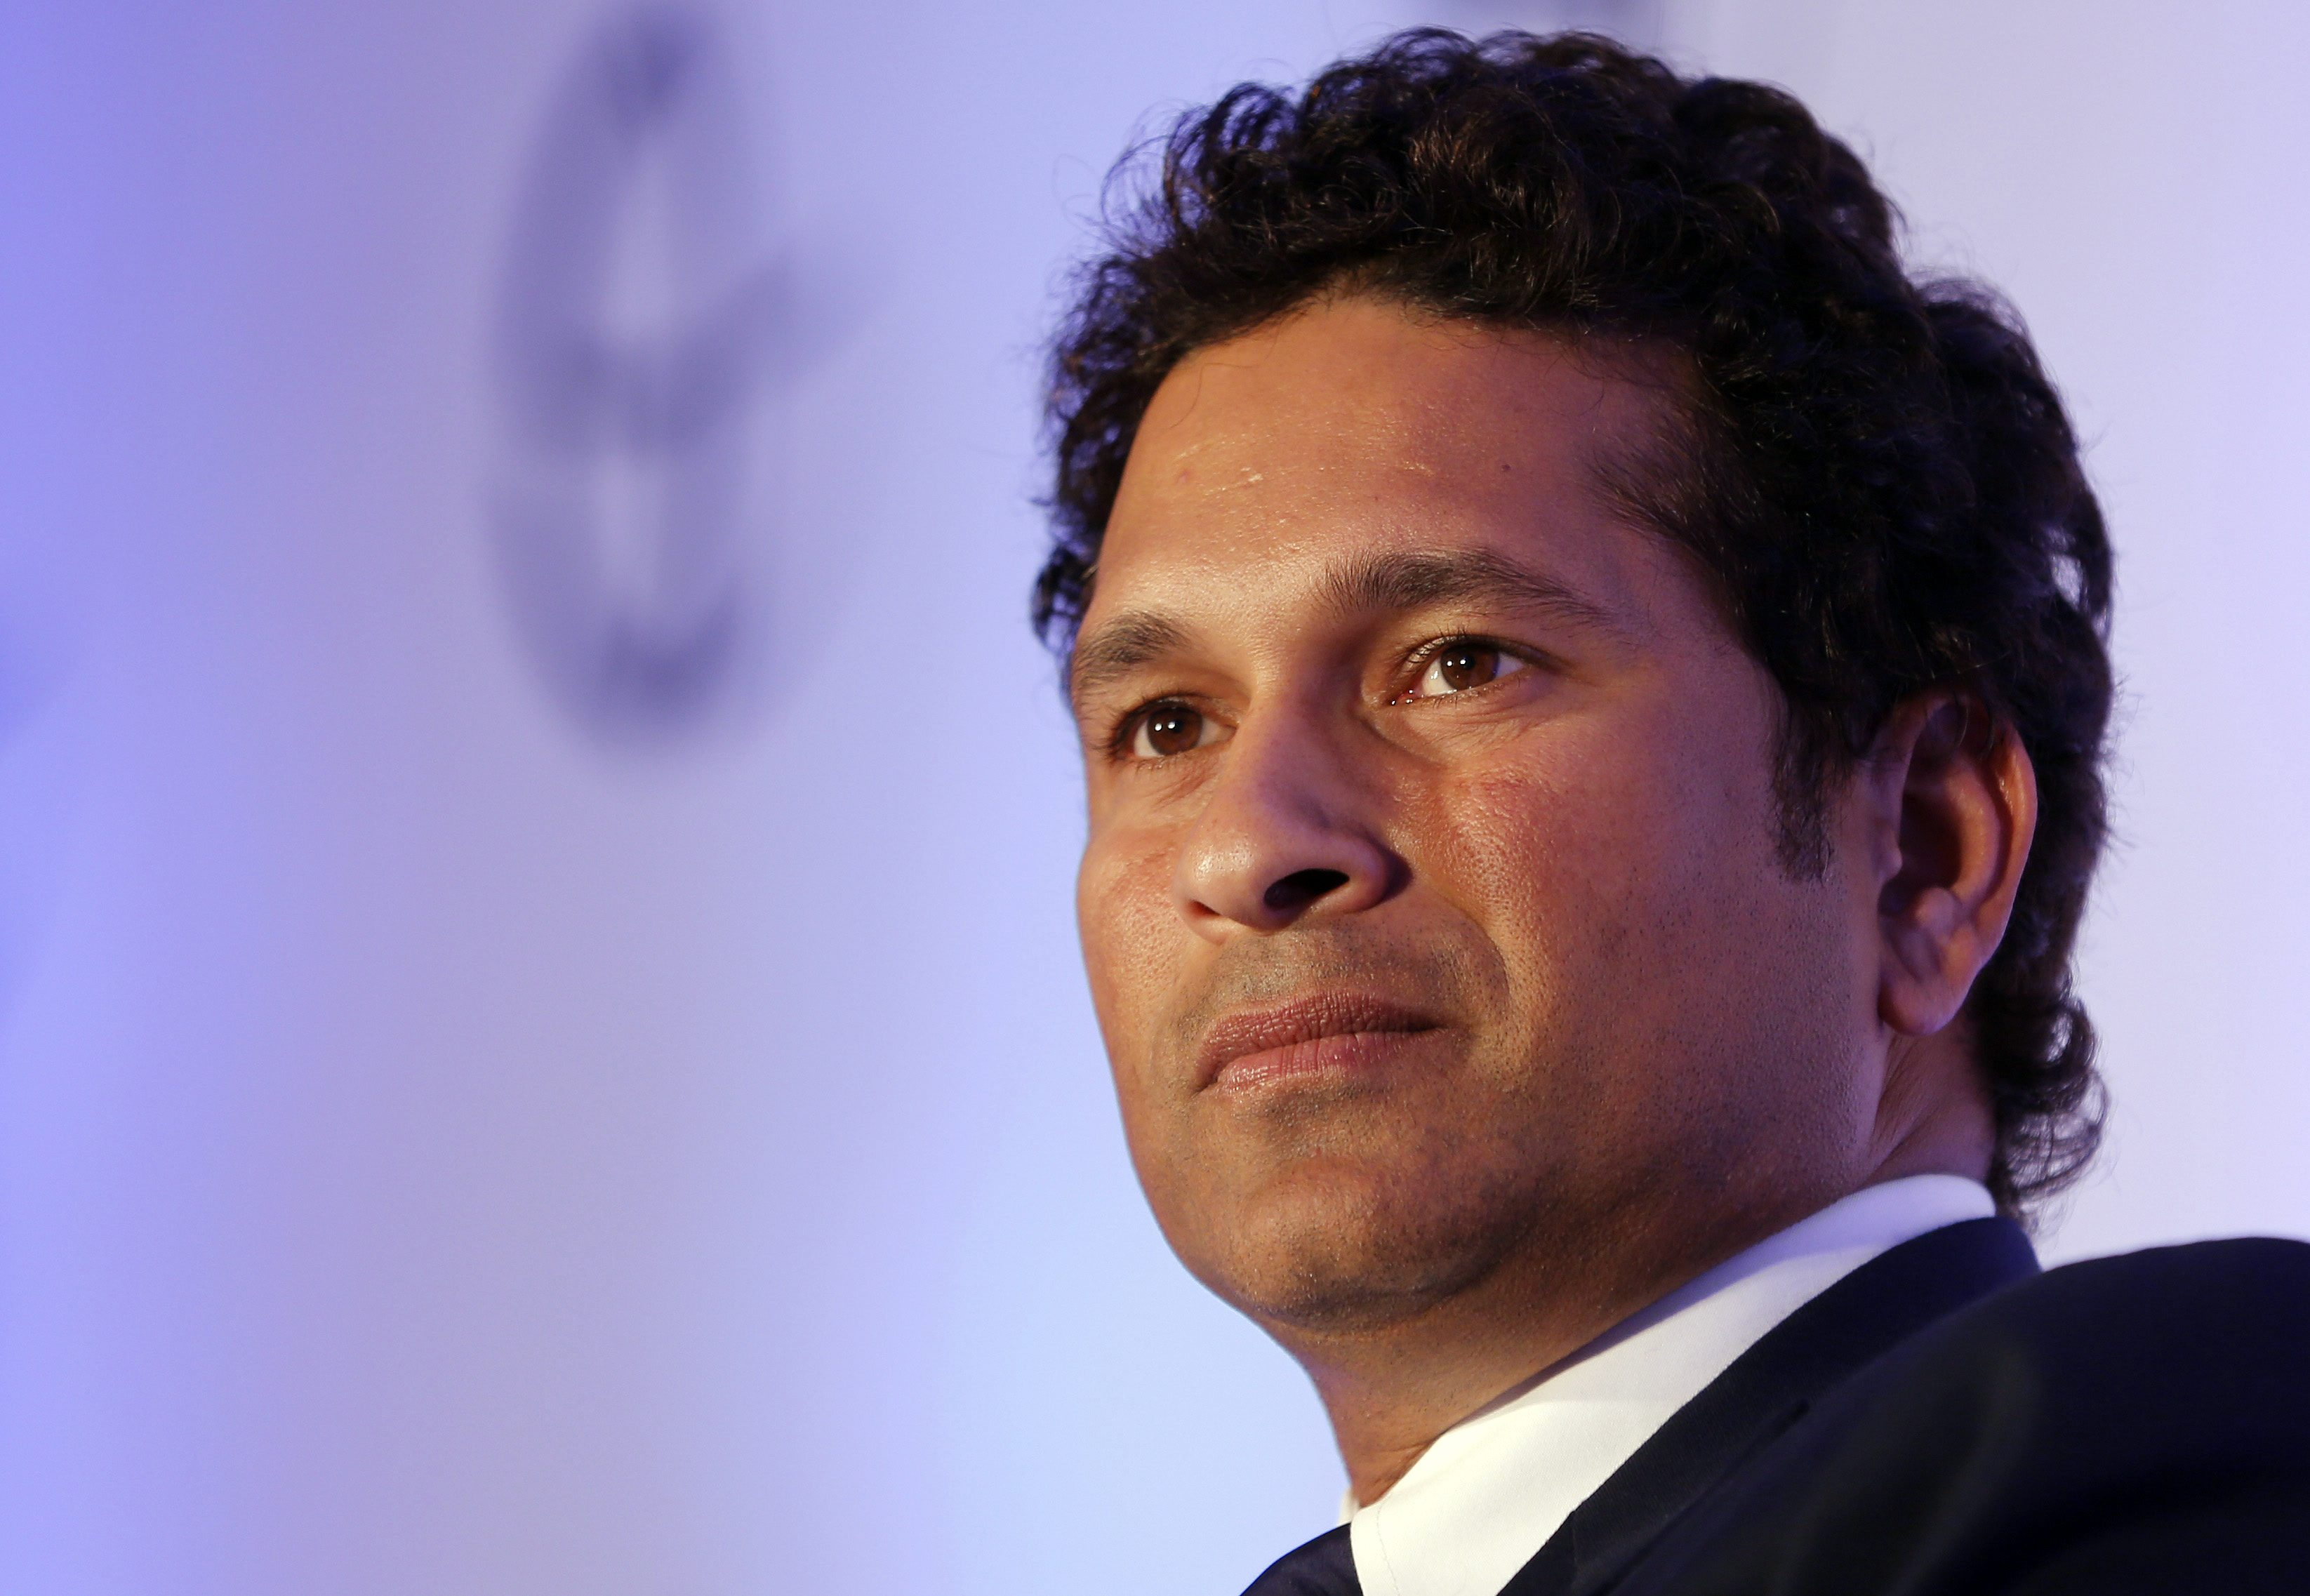 Sachin Tendulkar to be face of Kerala govt's campaign against drug, liquor abuse